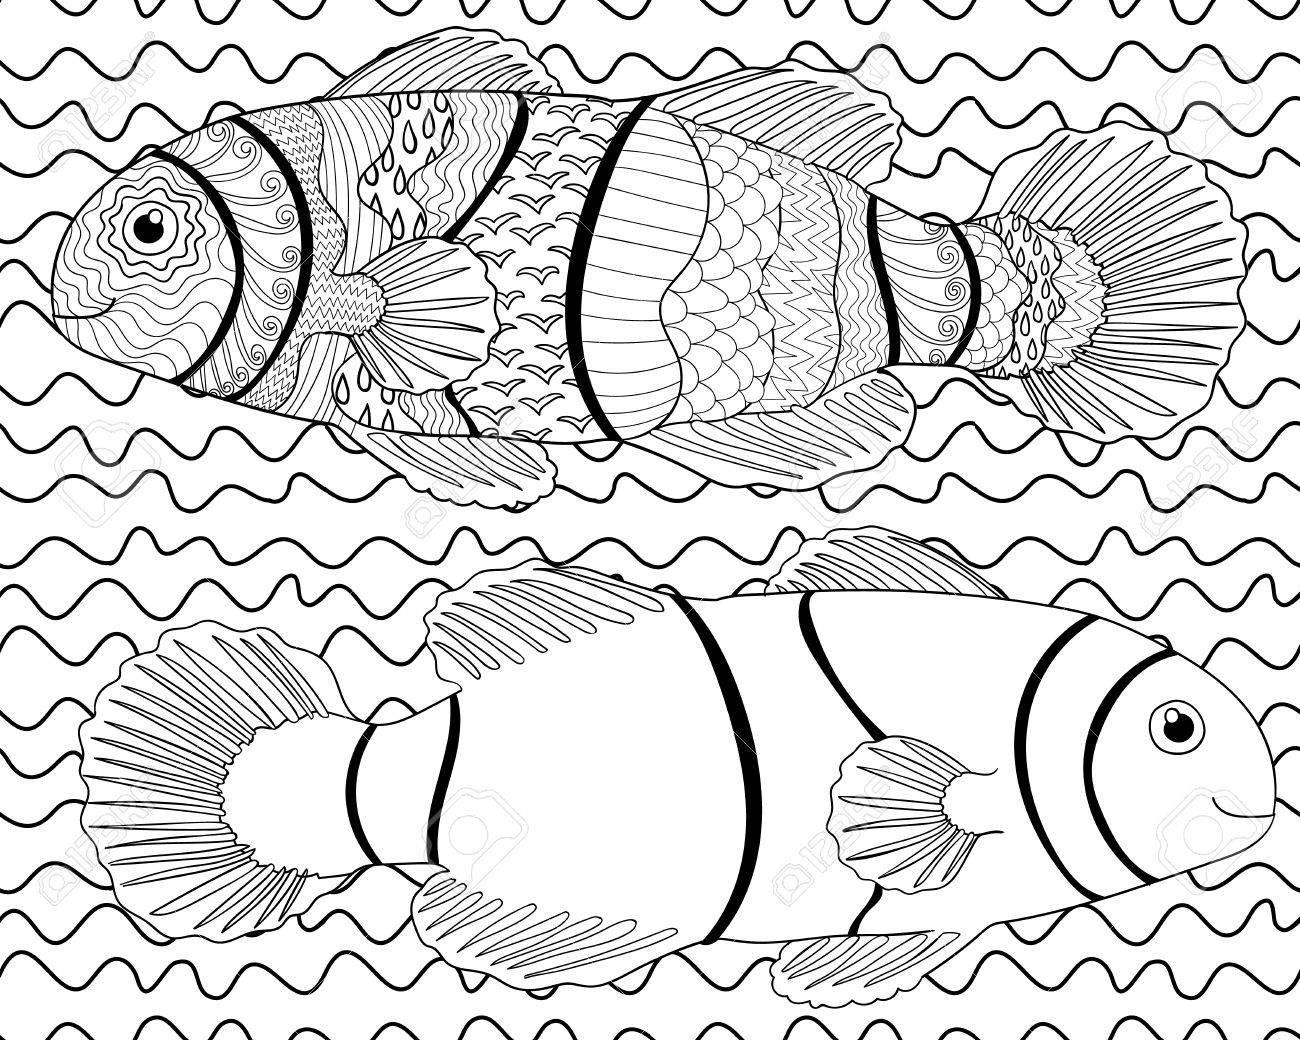 how to draw a clownfish learn how to draw a clownfish fishes step by step draw a how clownfish to